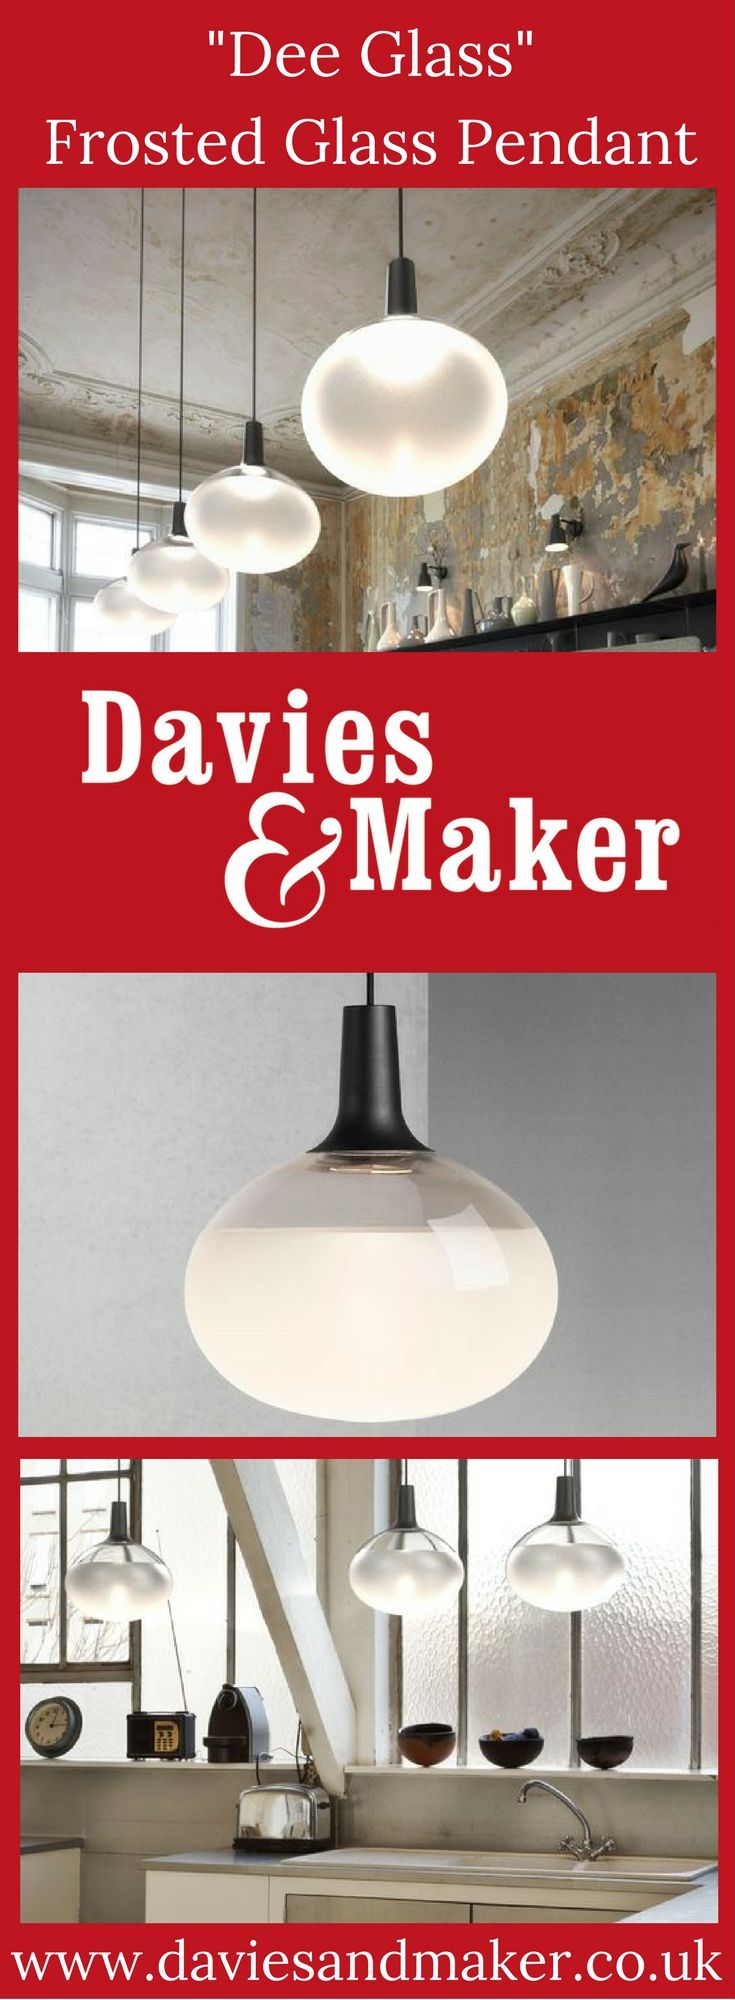 Contemporary frosted glass pendant light designed by Bønnelycke MDD for Danish lighting specialists, Nordlux. Dimmable LED technology ensures perfect illumination, adding light and atmosphere to the room. Available from: http://www.daviesandmaker.co.uk/product/dee-frosted-glass-pendant-light/